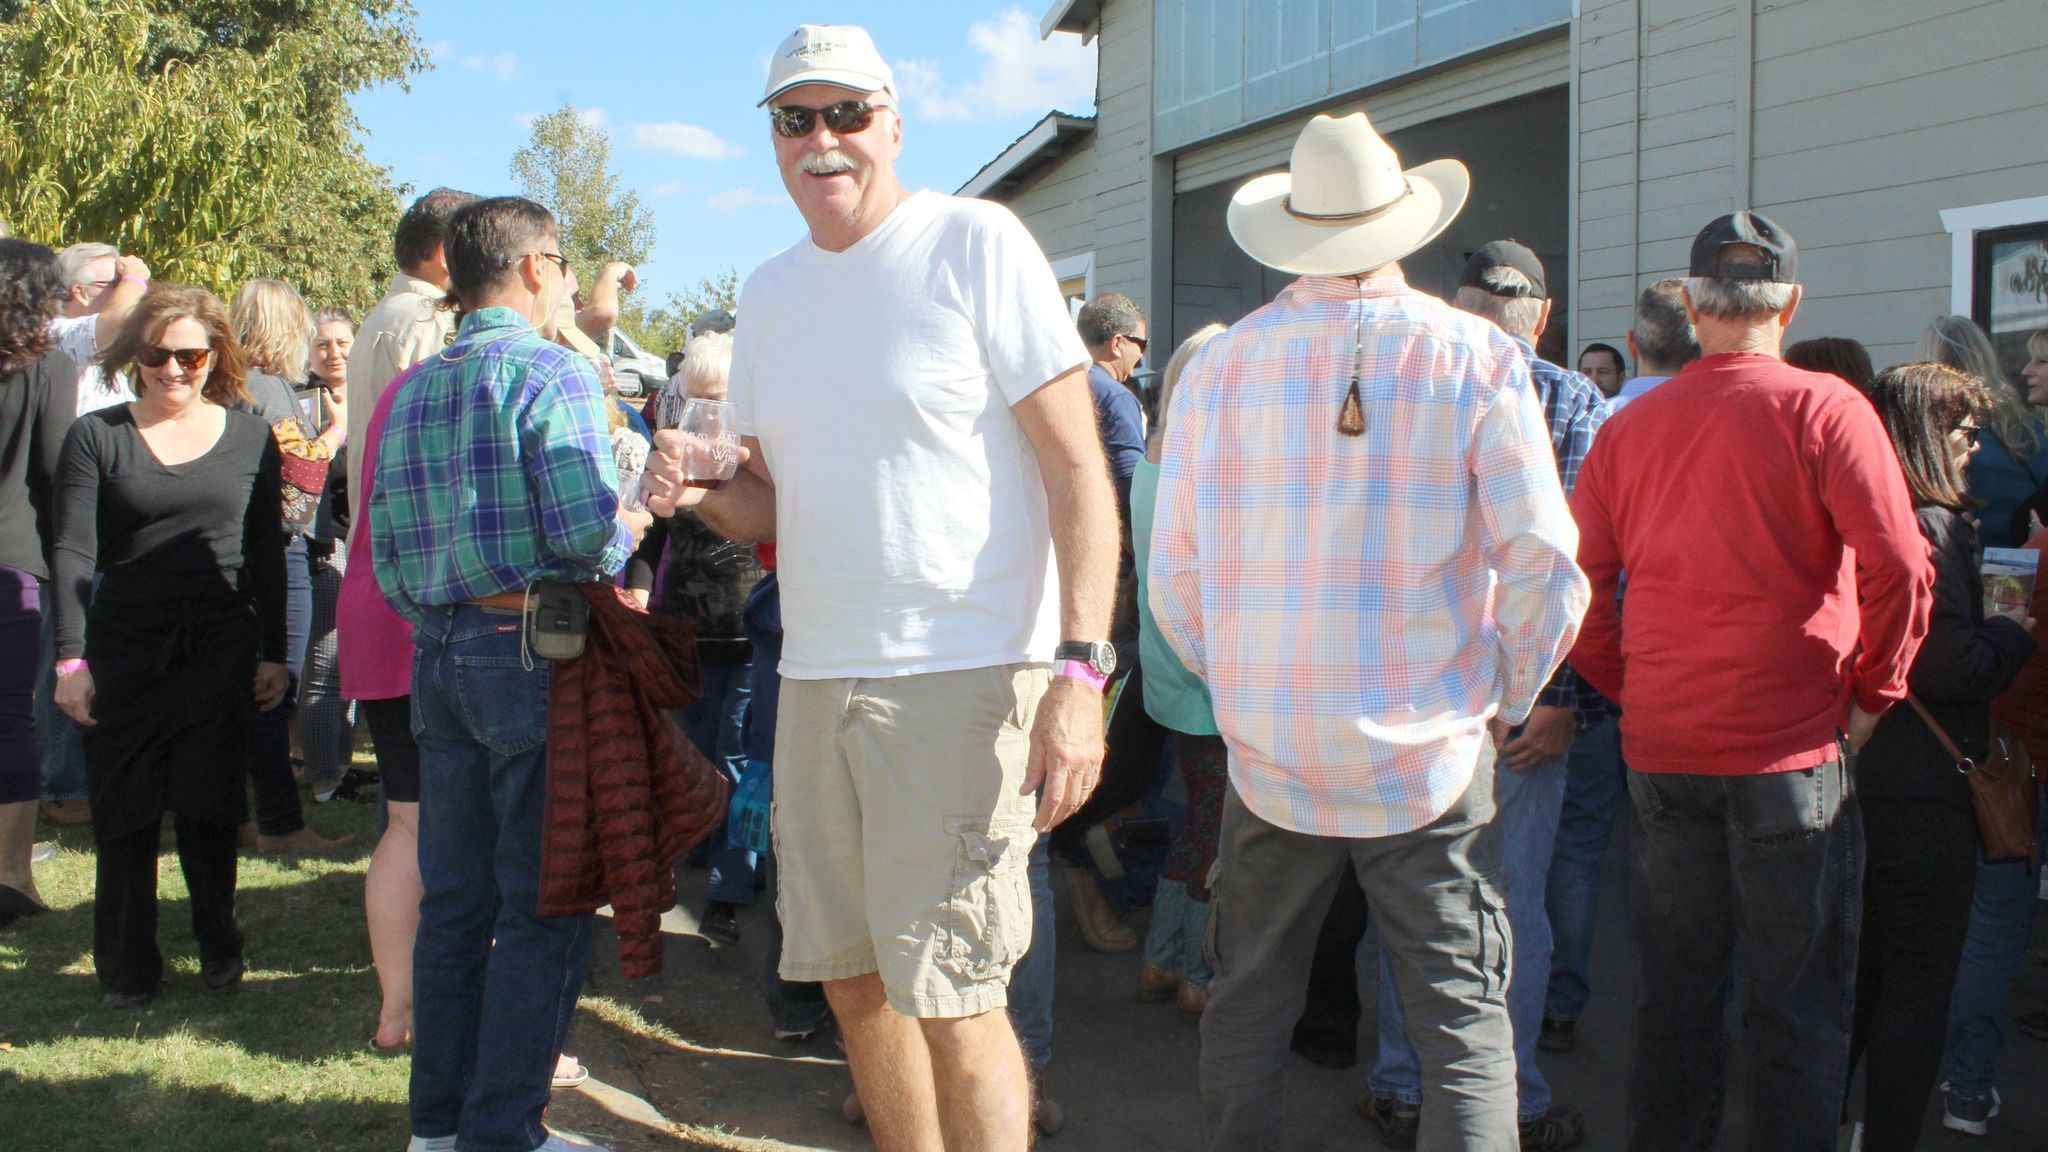 Festival host David Begent talks with guests. He and his wife Molly open their ranch on Highland Valley Road for the festival each year.